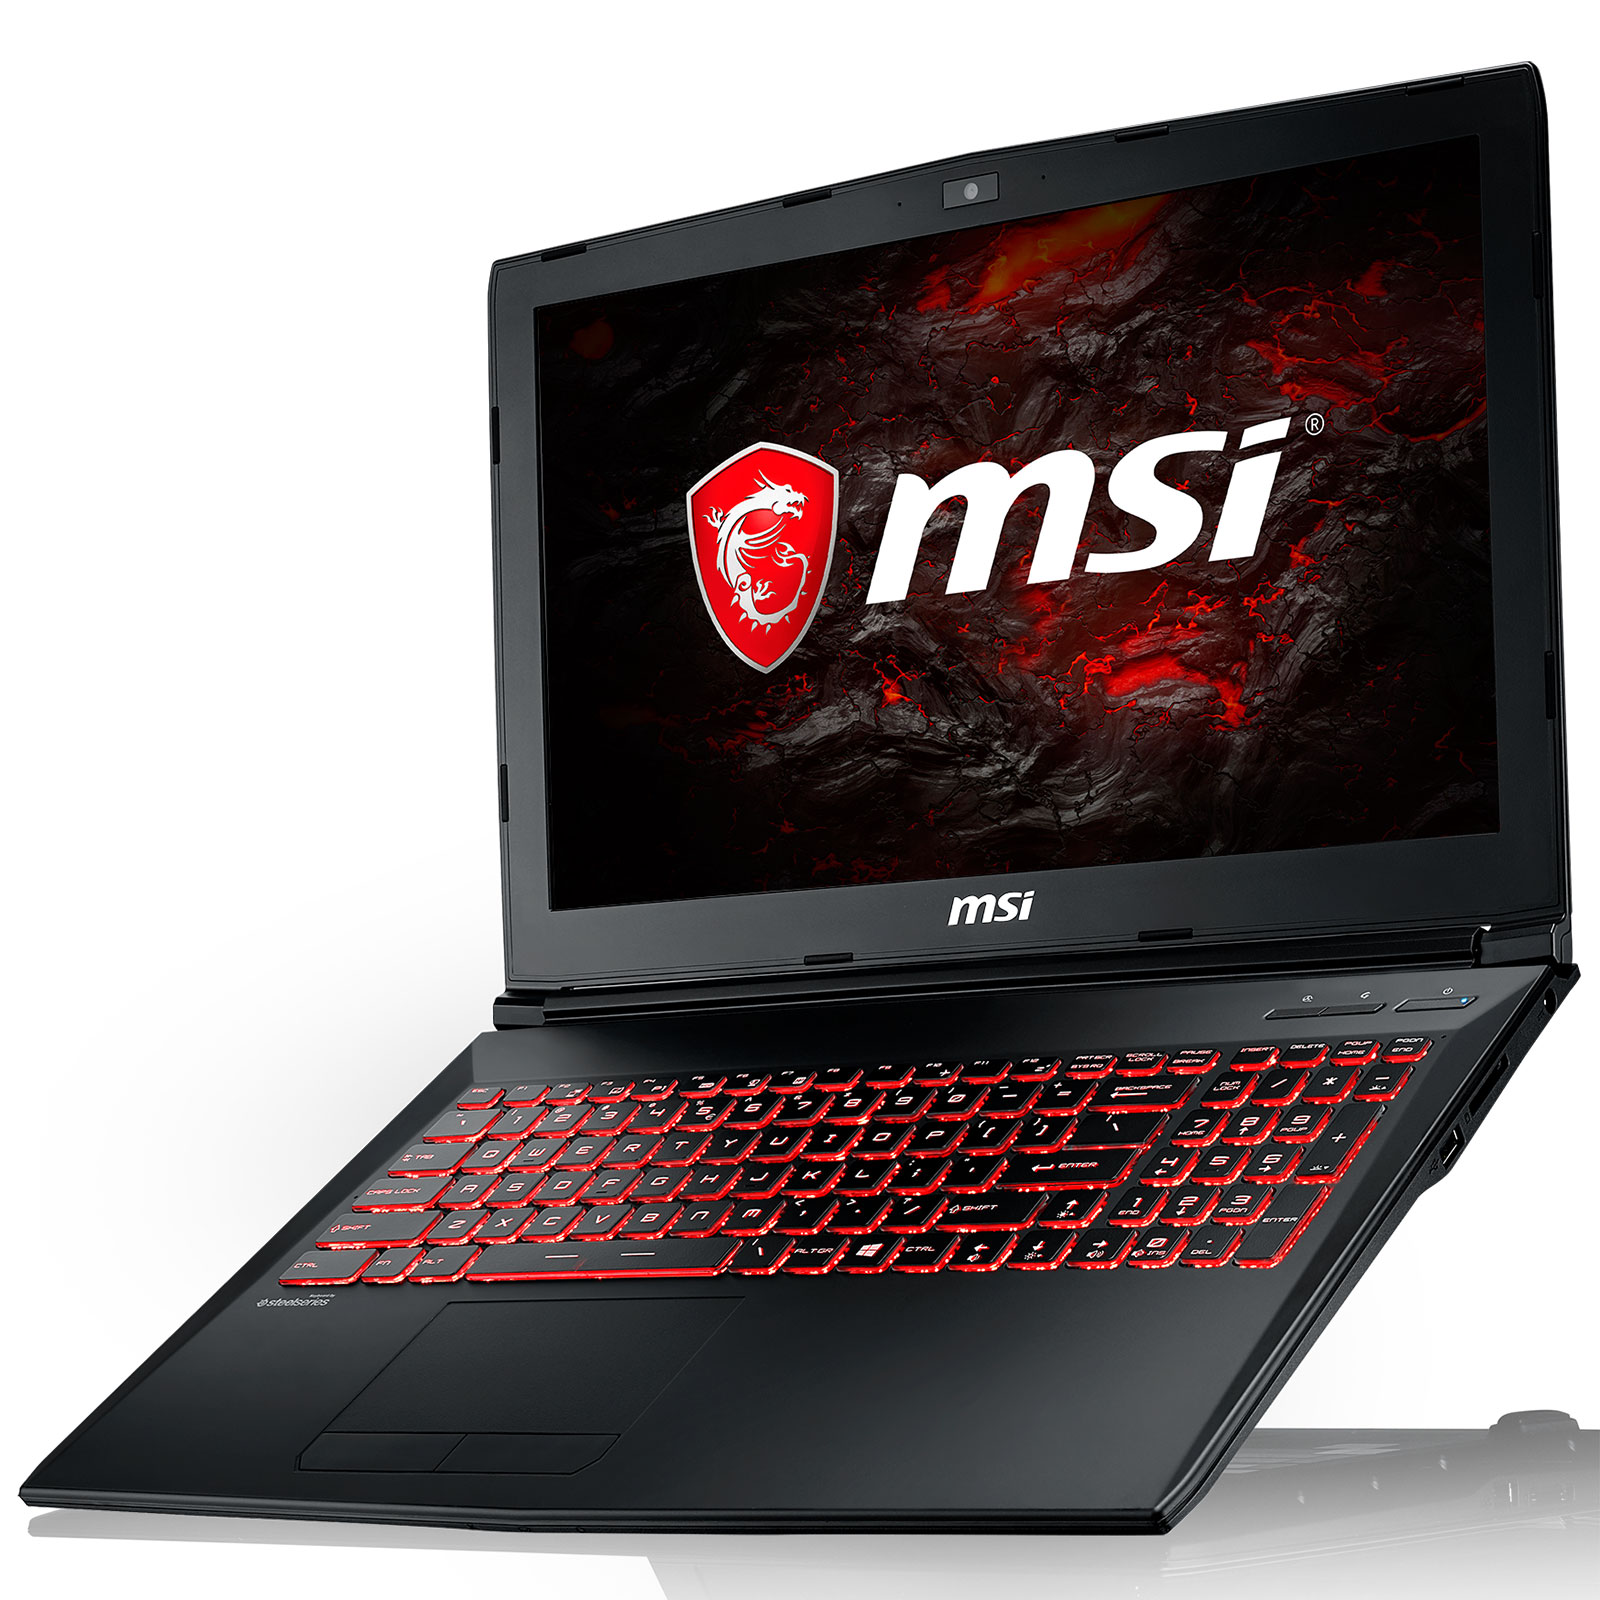 "PC portable MSI GL62M 7RDX-2038XFR Intel Core i5-7300HQ 8 Go 1 To 15.6"" LED Full HD NVIDIA GeForce GTX 1050 2 Go Wi-Fi AC/Bluetooth Webcam FreeDOS (garantie constructeur 2 ans)"